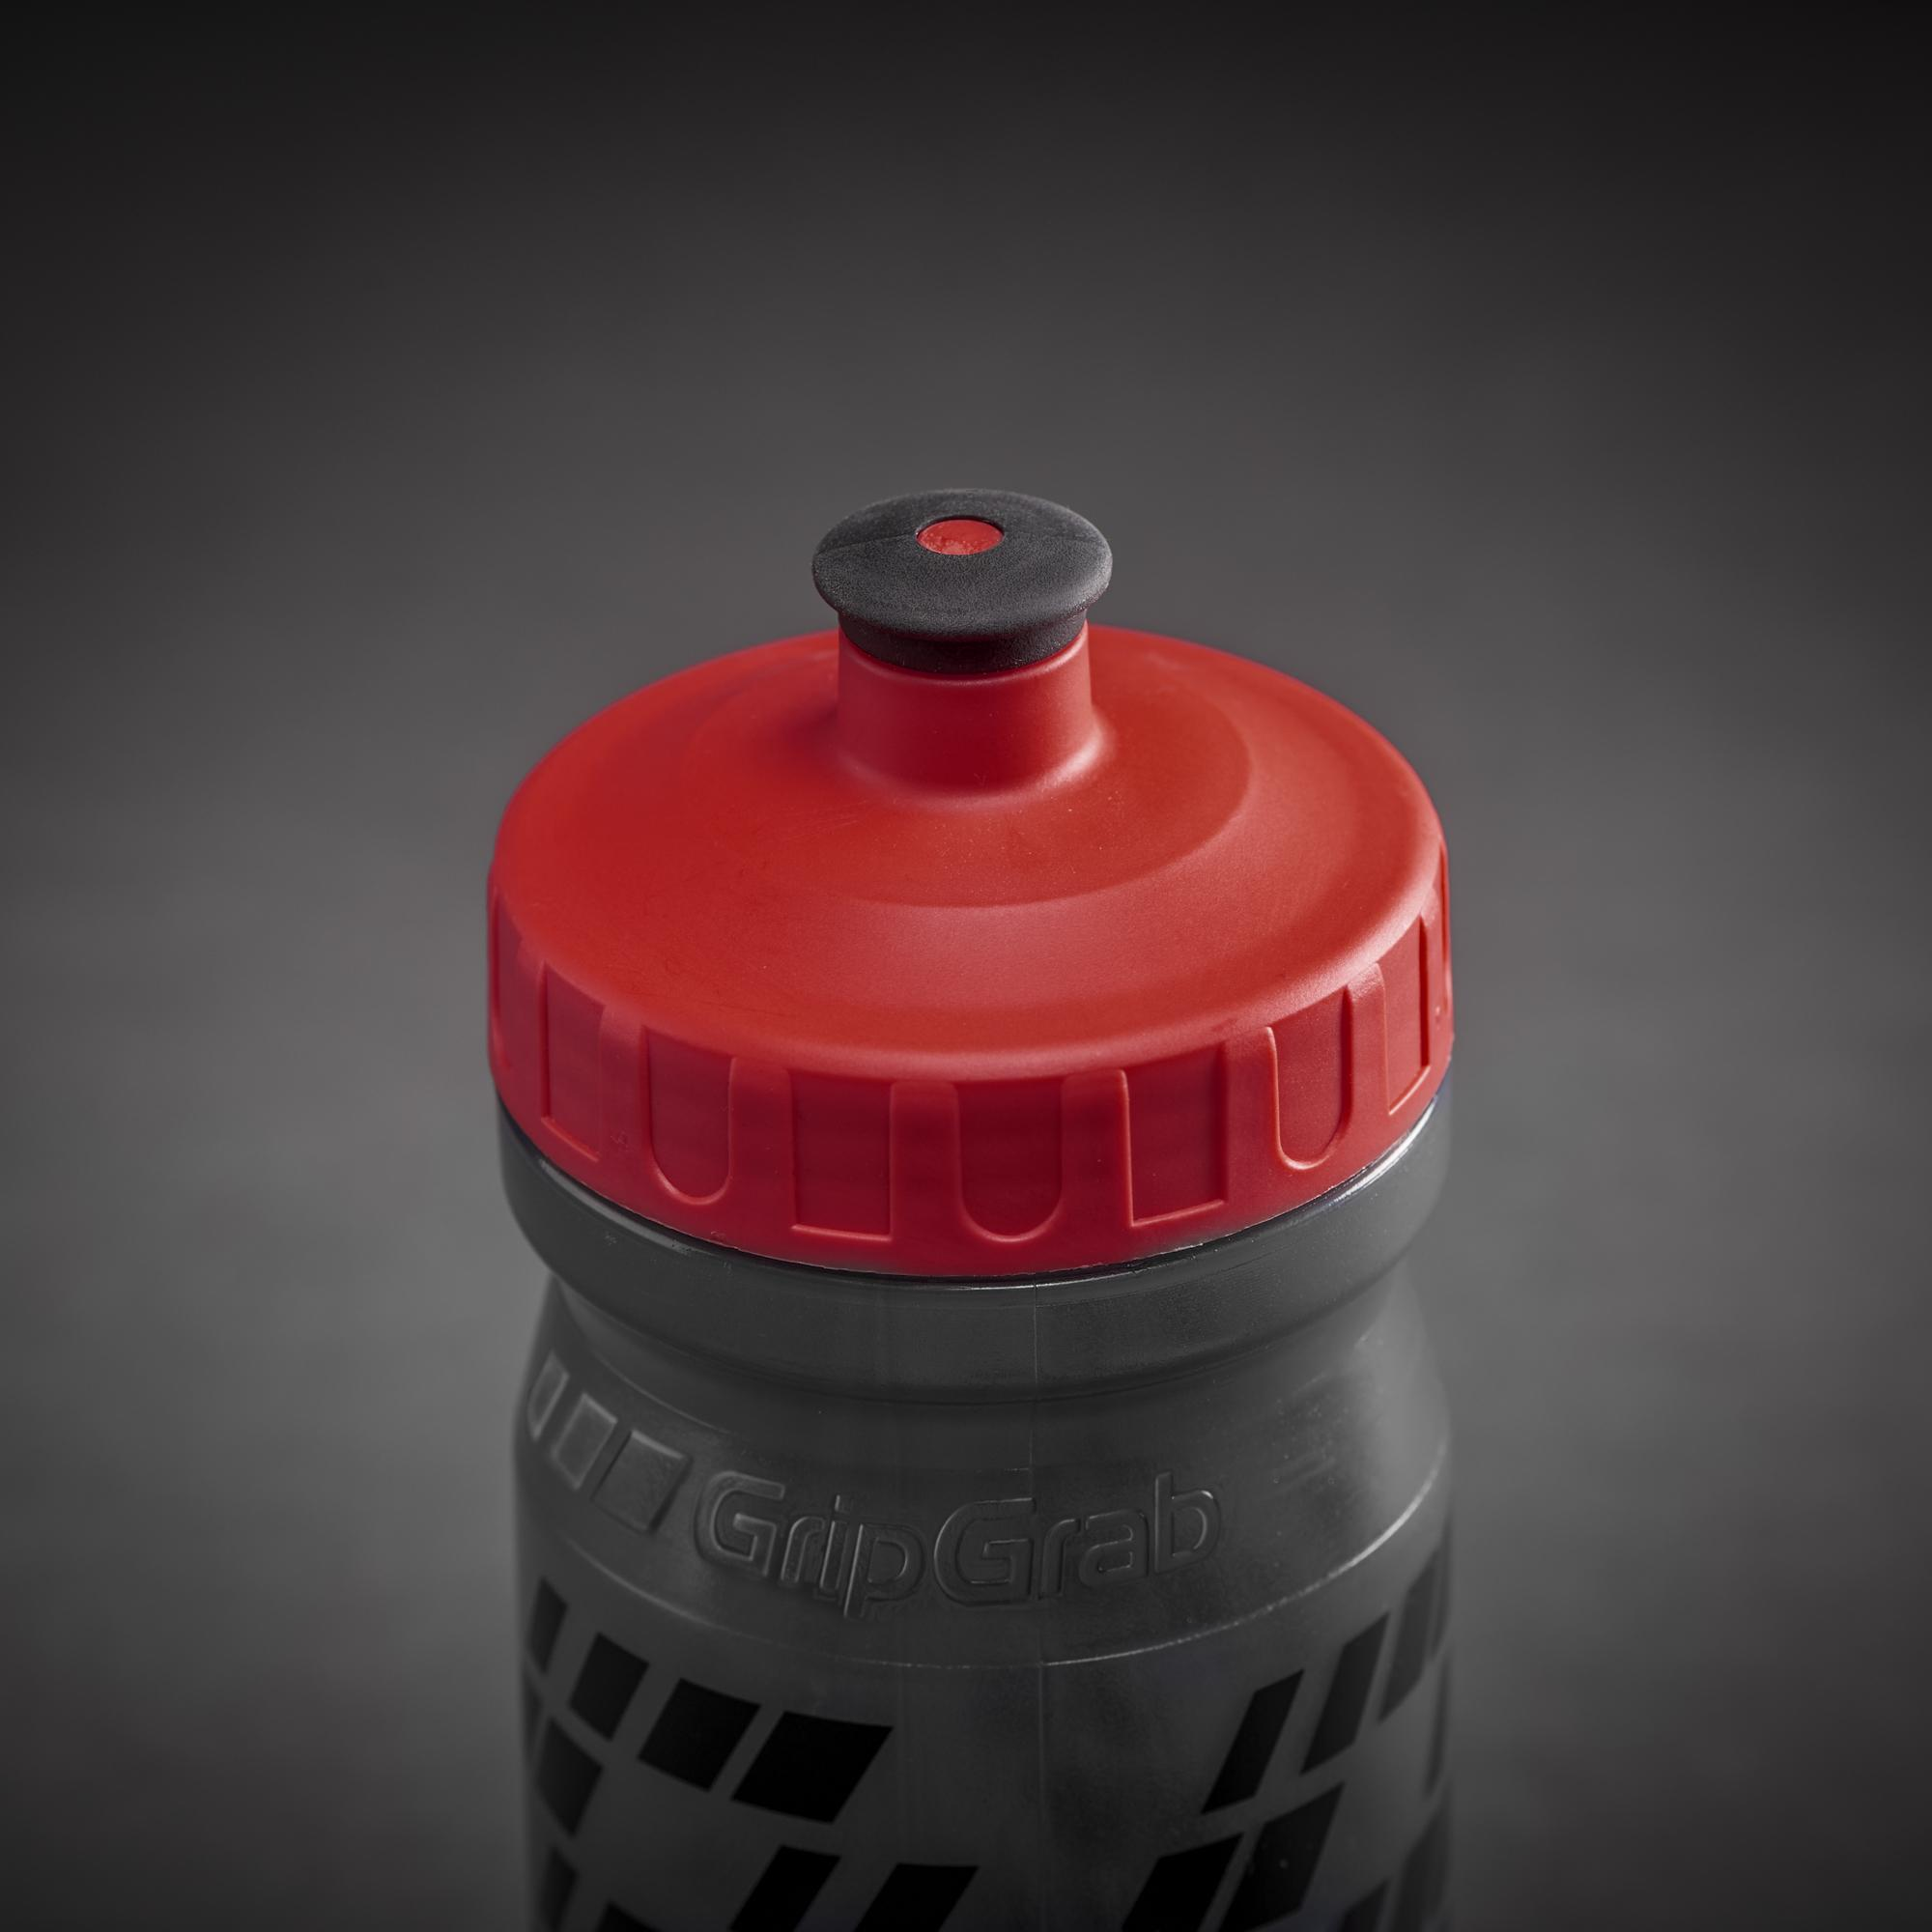 Afbeelding GripGrab Bidon Rood / 2018 Drinking Bottle Small  600 ml